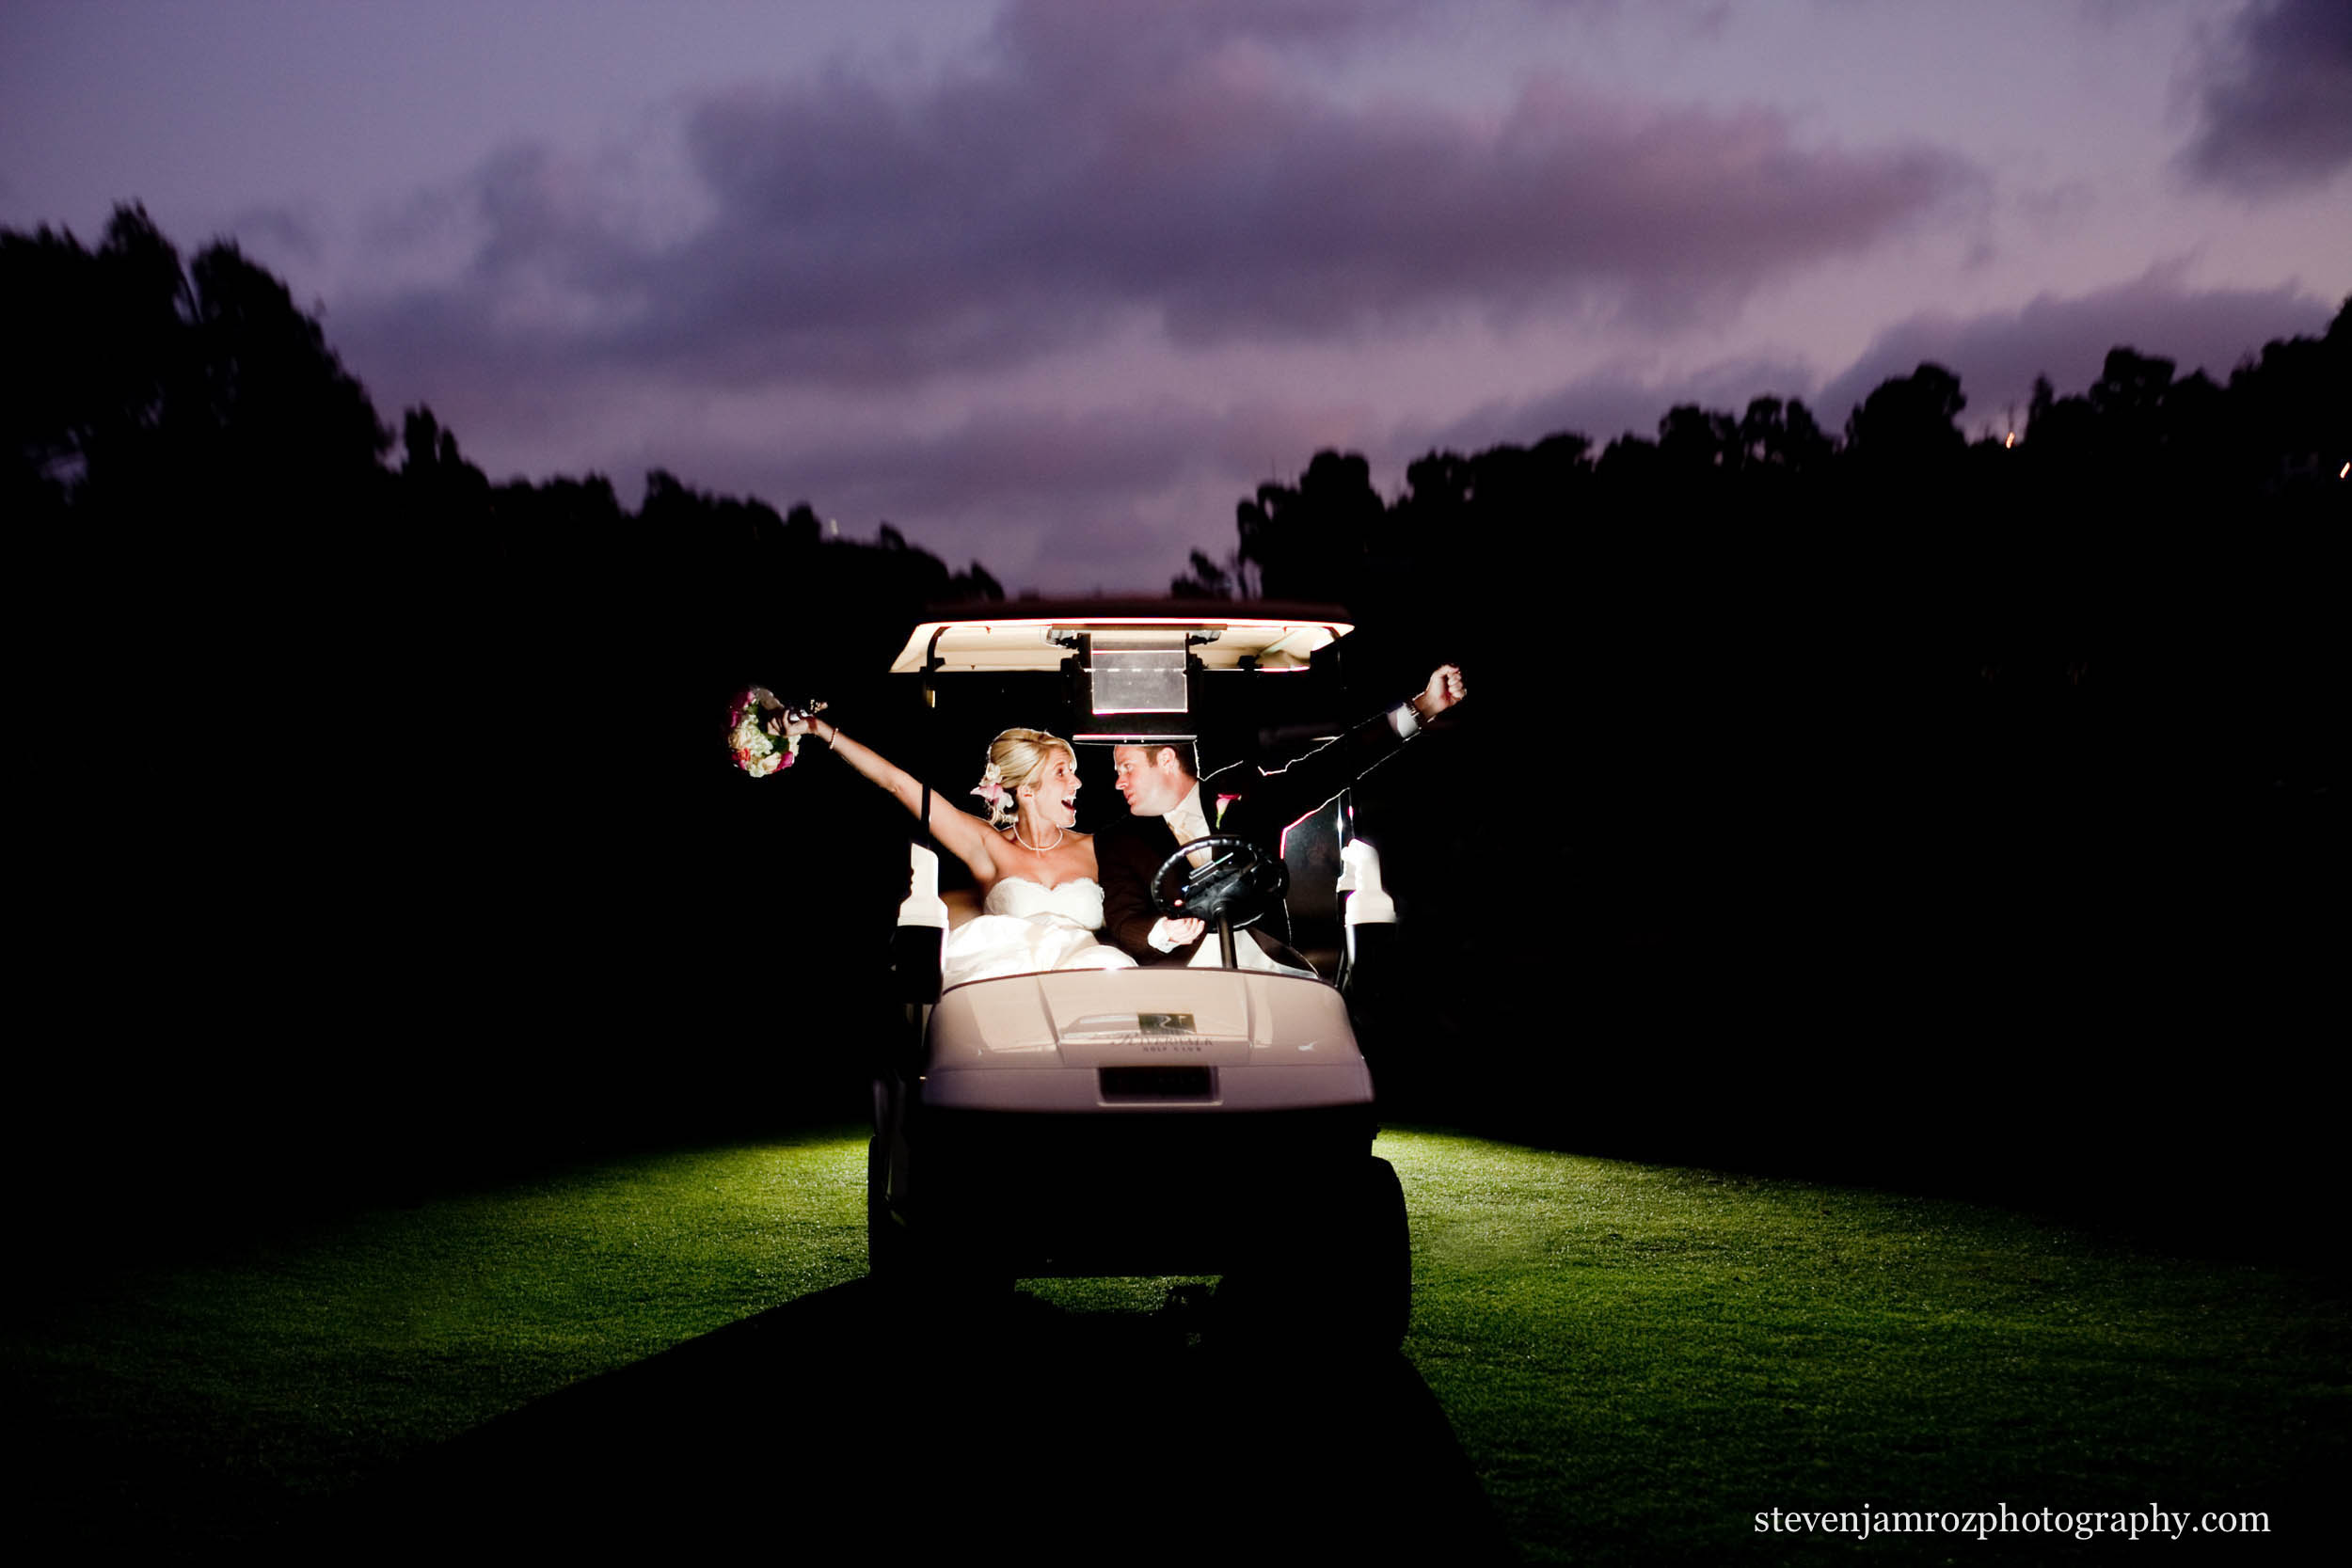 golf-course-wedding-raleigh-steven-jamroz-photography-0345.jpg